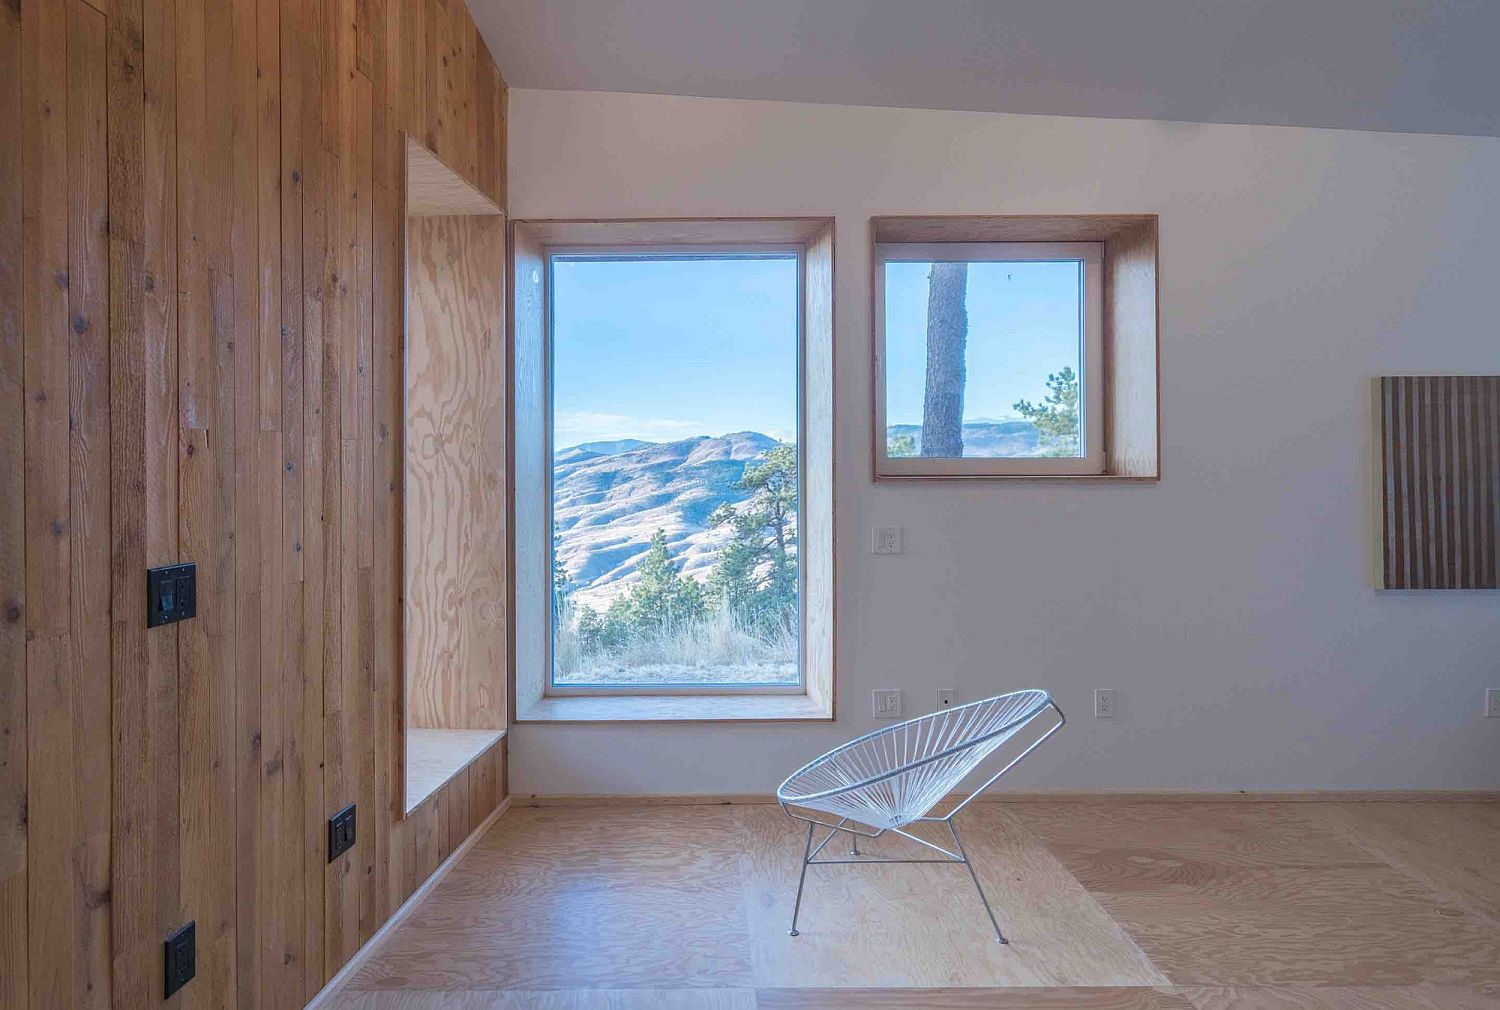 Top-notch insulation and great views combined at the MARTaK Passive House